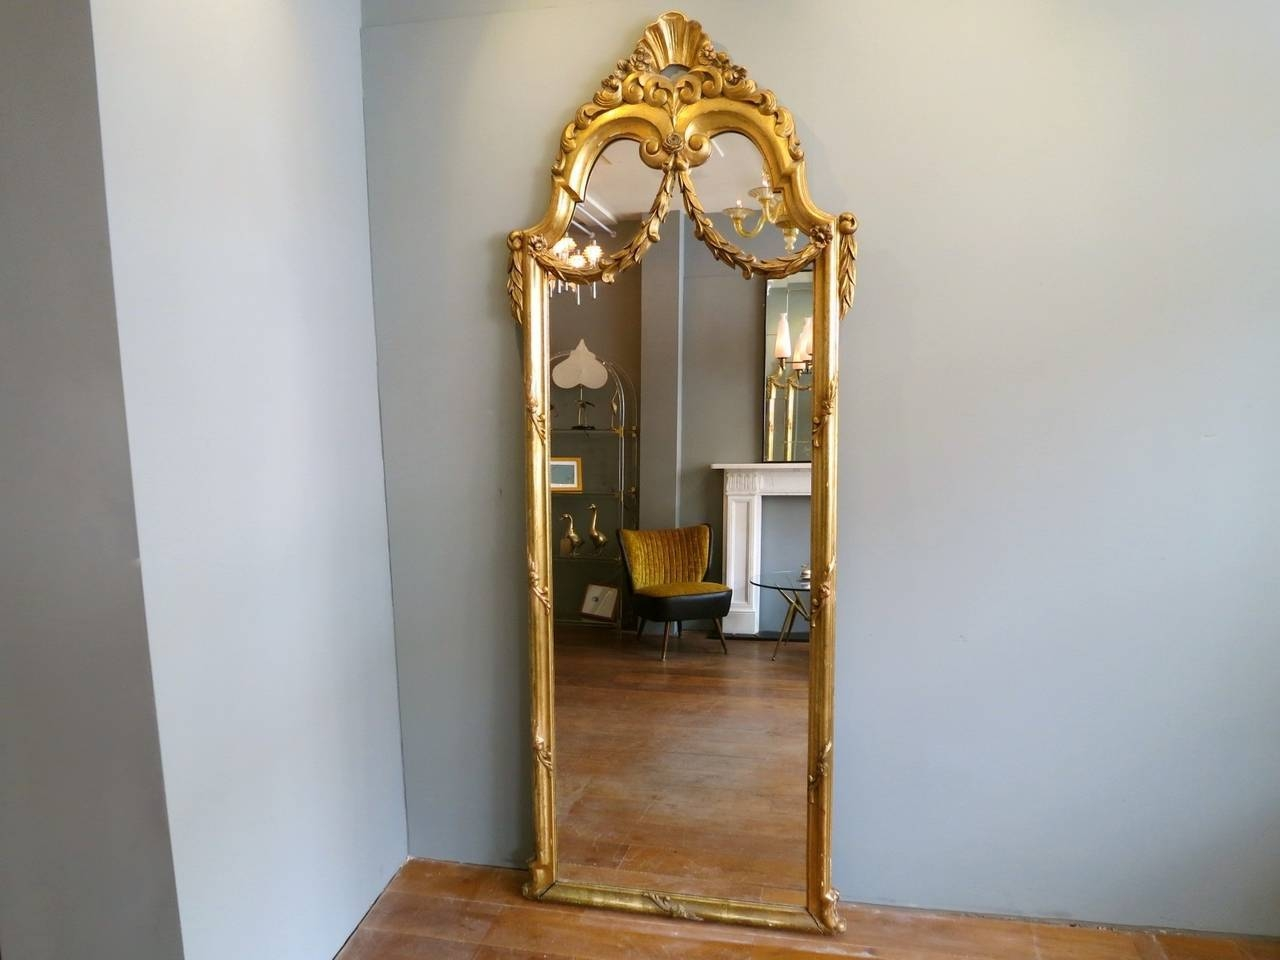 Antique French Gold Gilt Floor Standing Mirror At 1Stdibs regarding Antique French Floor Mirrors (Image 6 of 25)